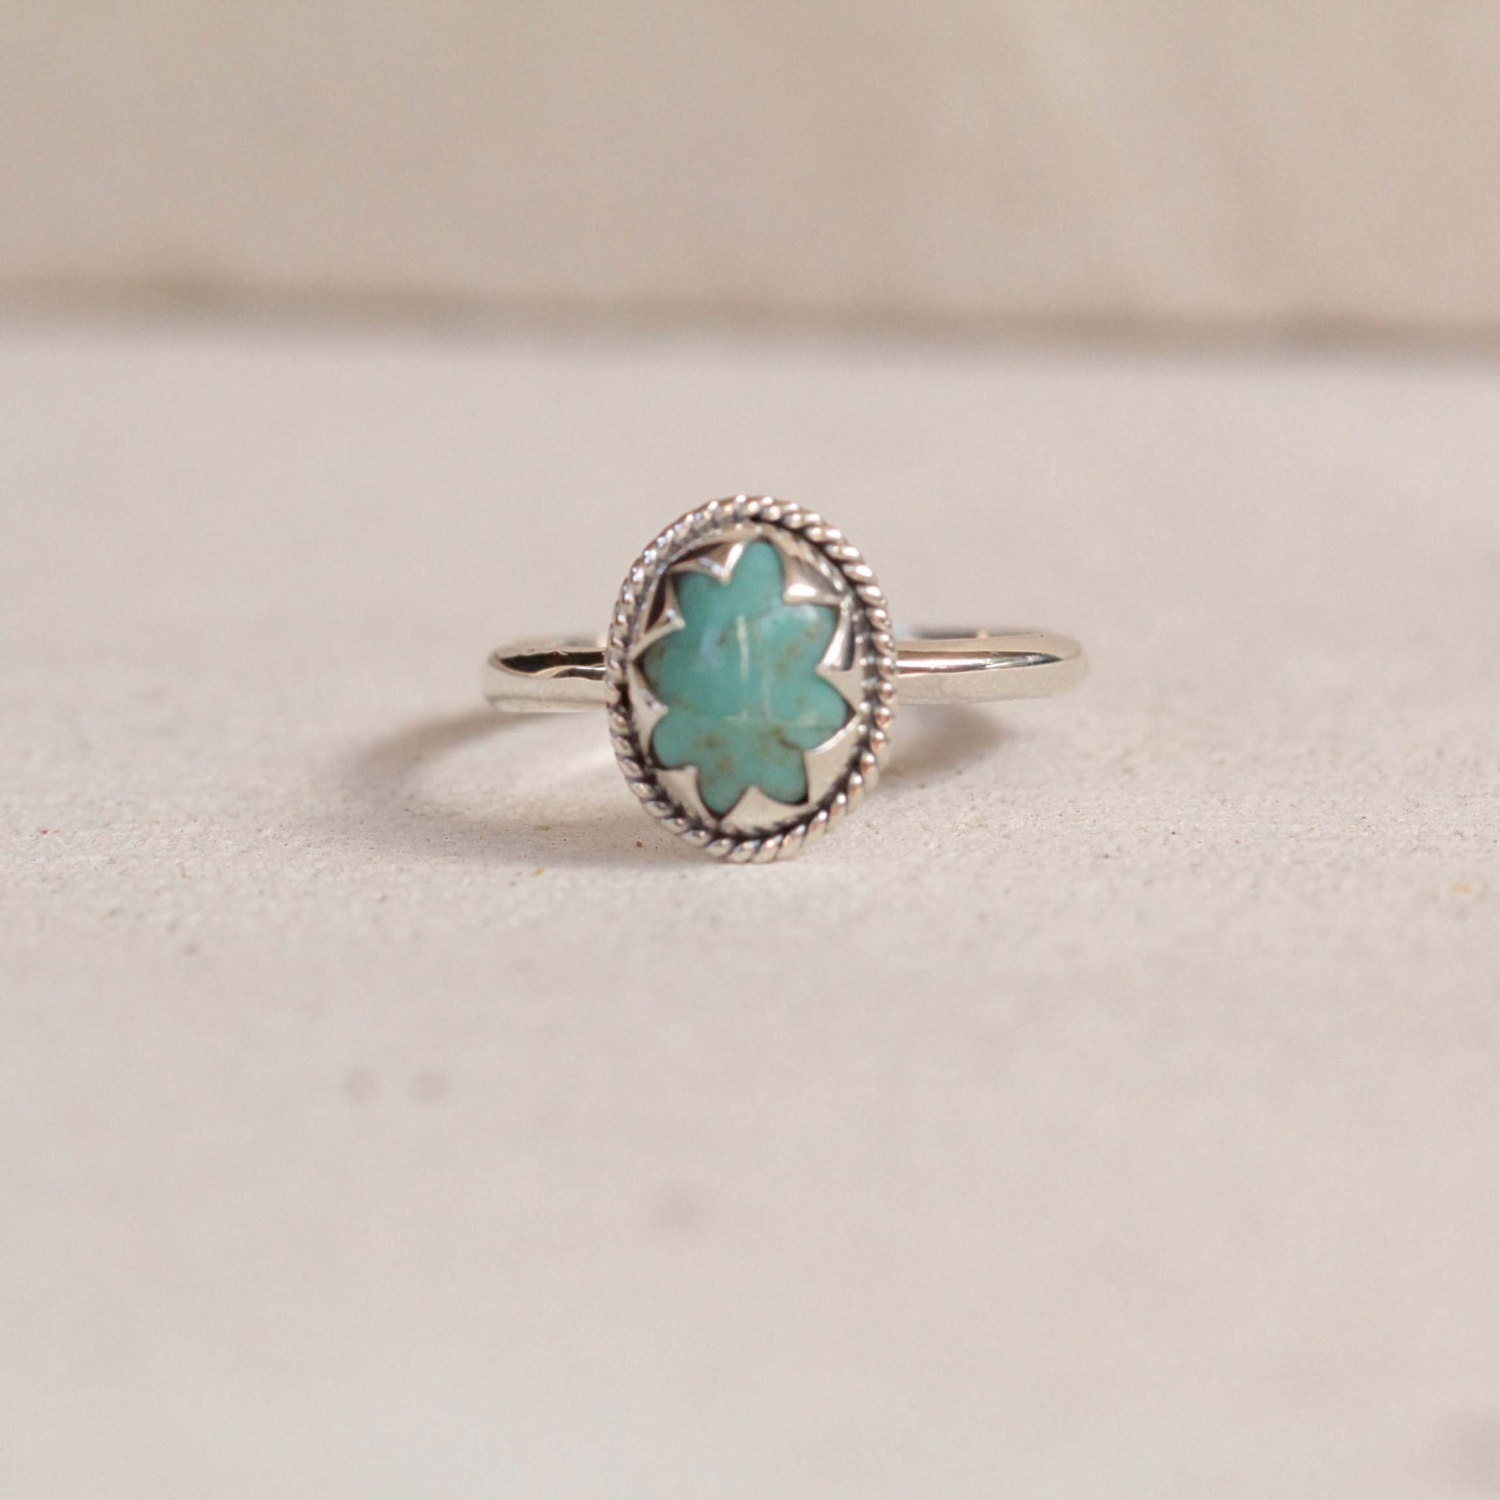 oval turquoise ring rings silver stones brighton cabochon stone products web of choice